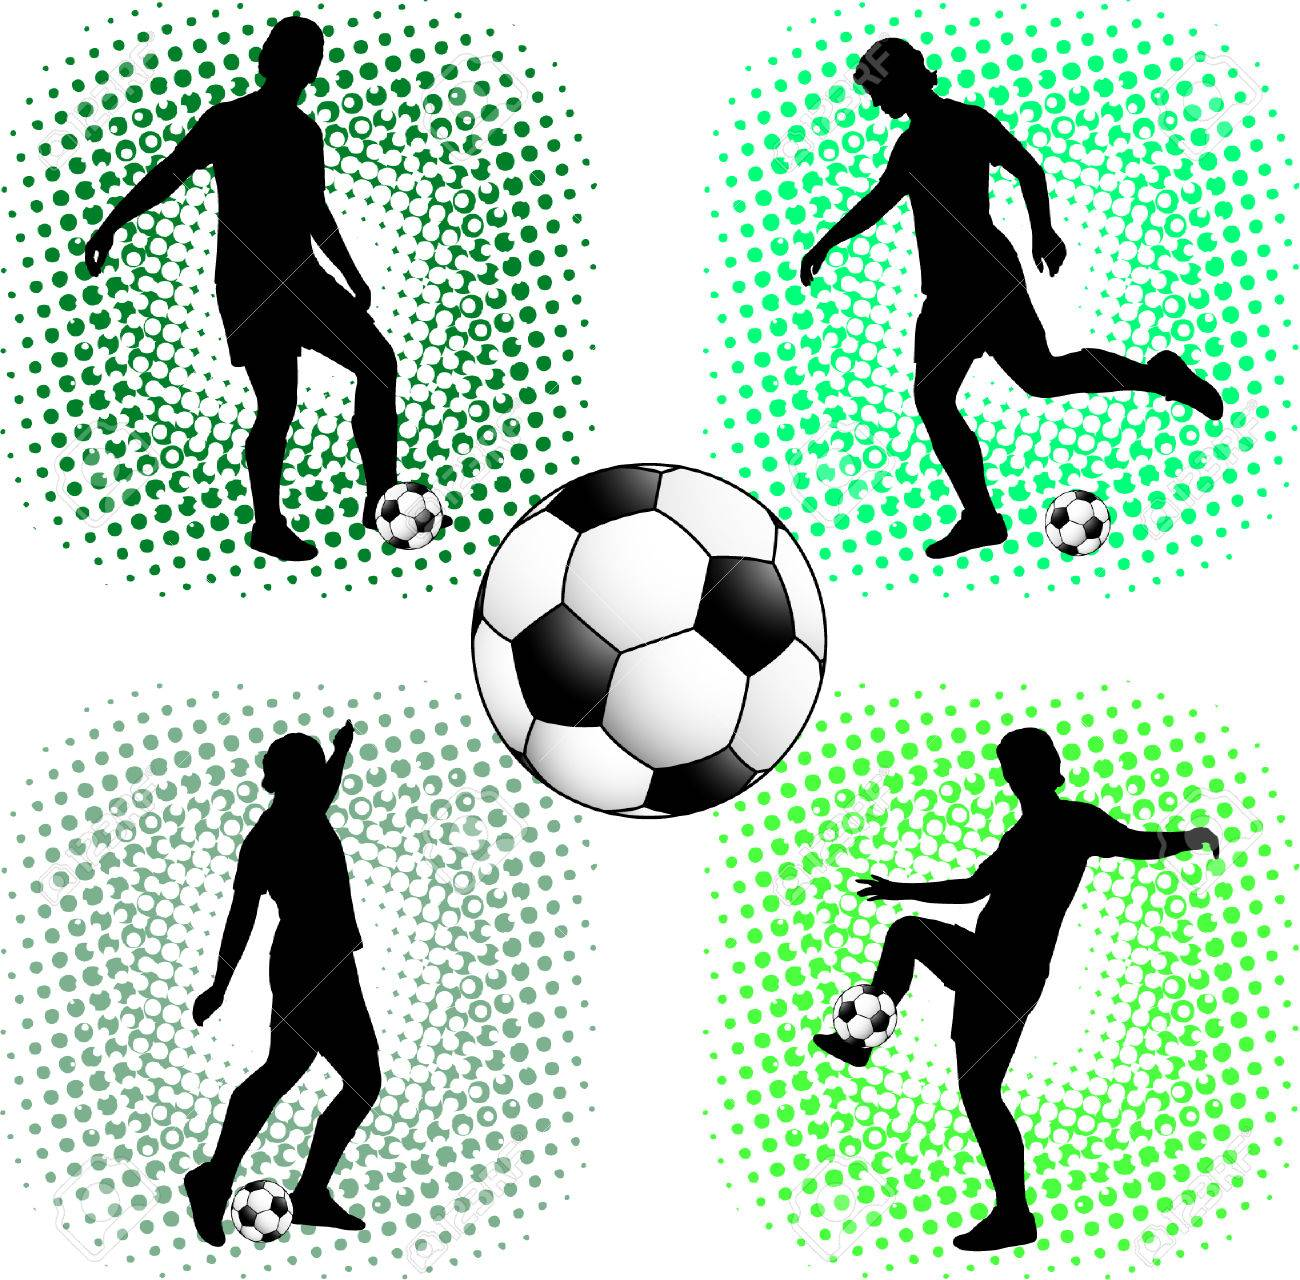 soccer players silhouettes - 6039600